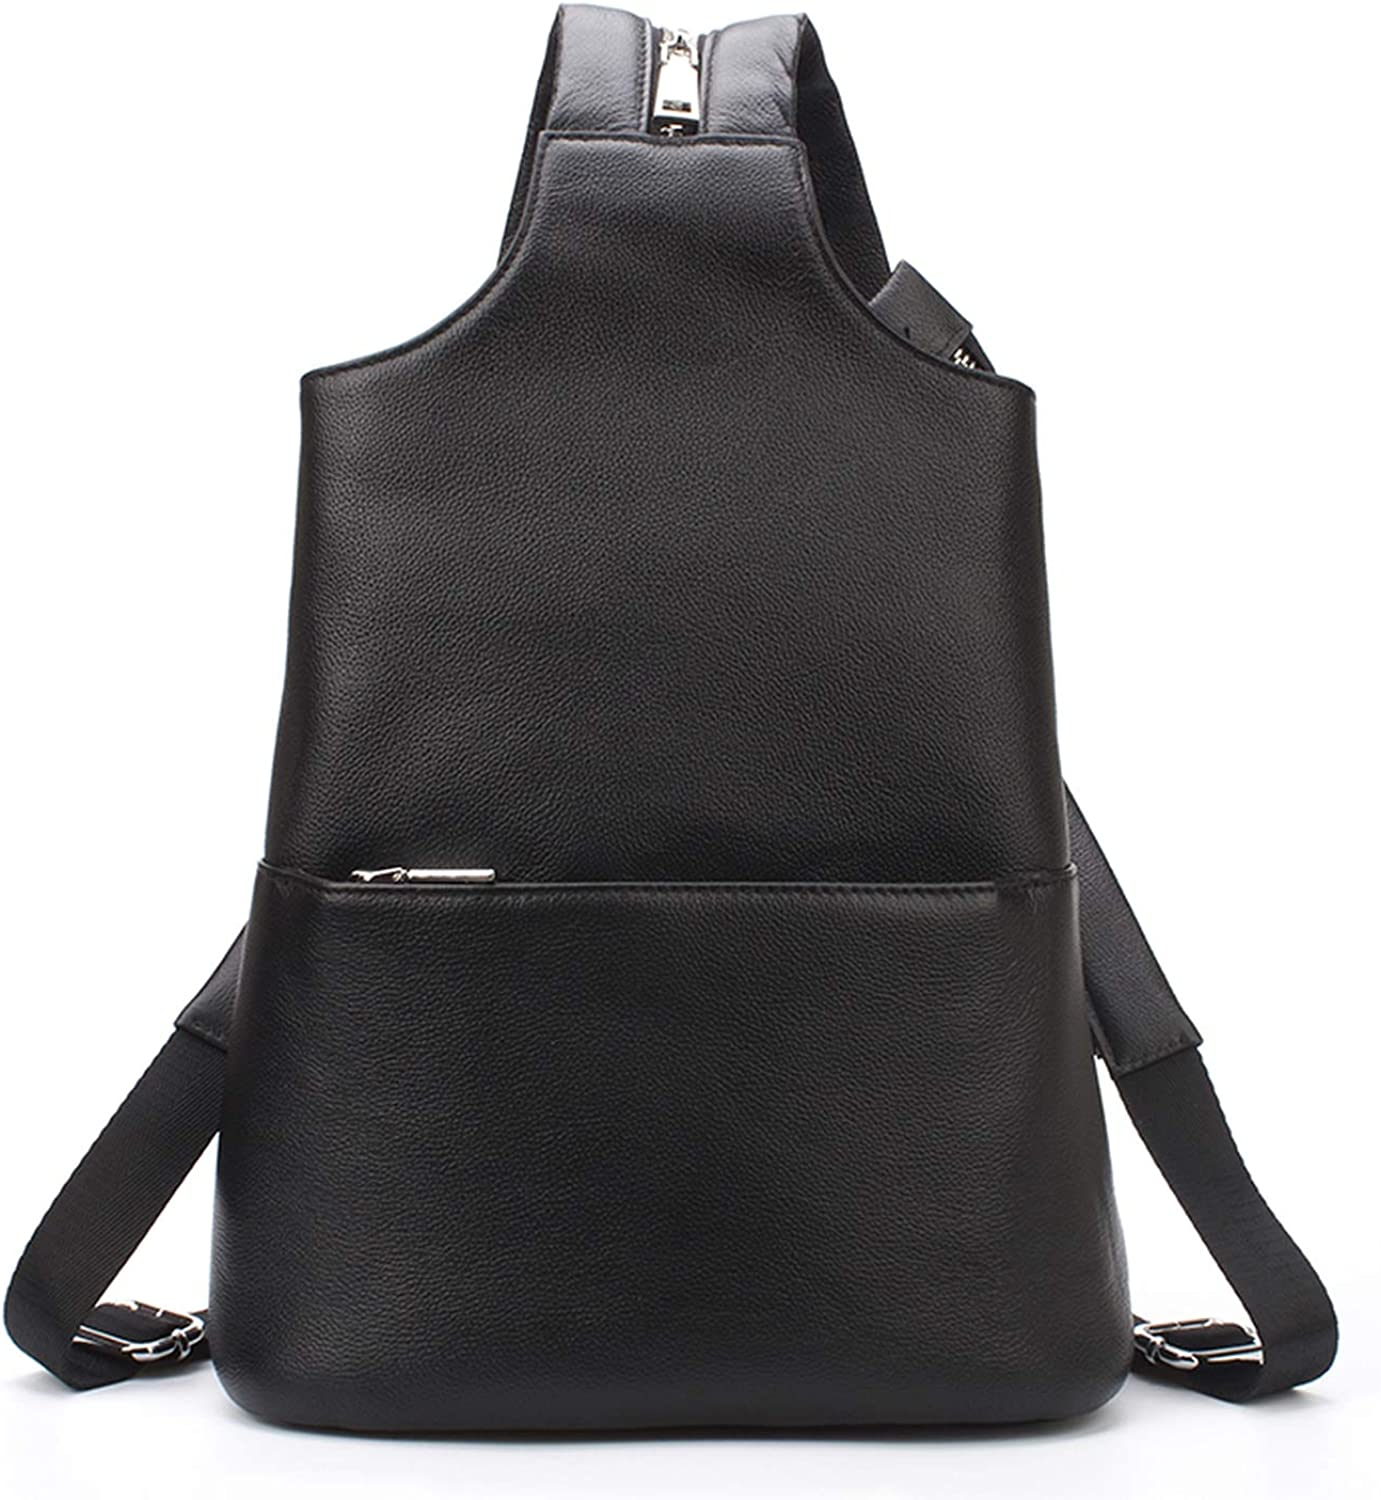 Brand Black Unisex Genuine Leather Backpack Couple Chest Bag Real Leather Simple and Fashion Style,Black